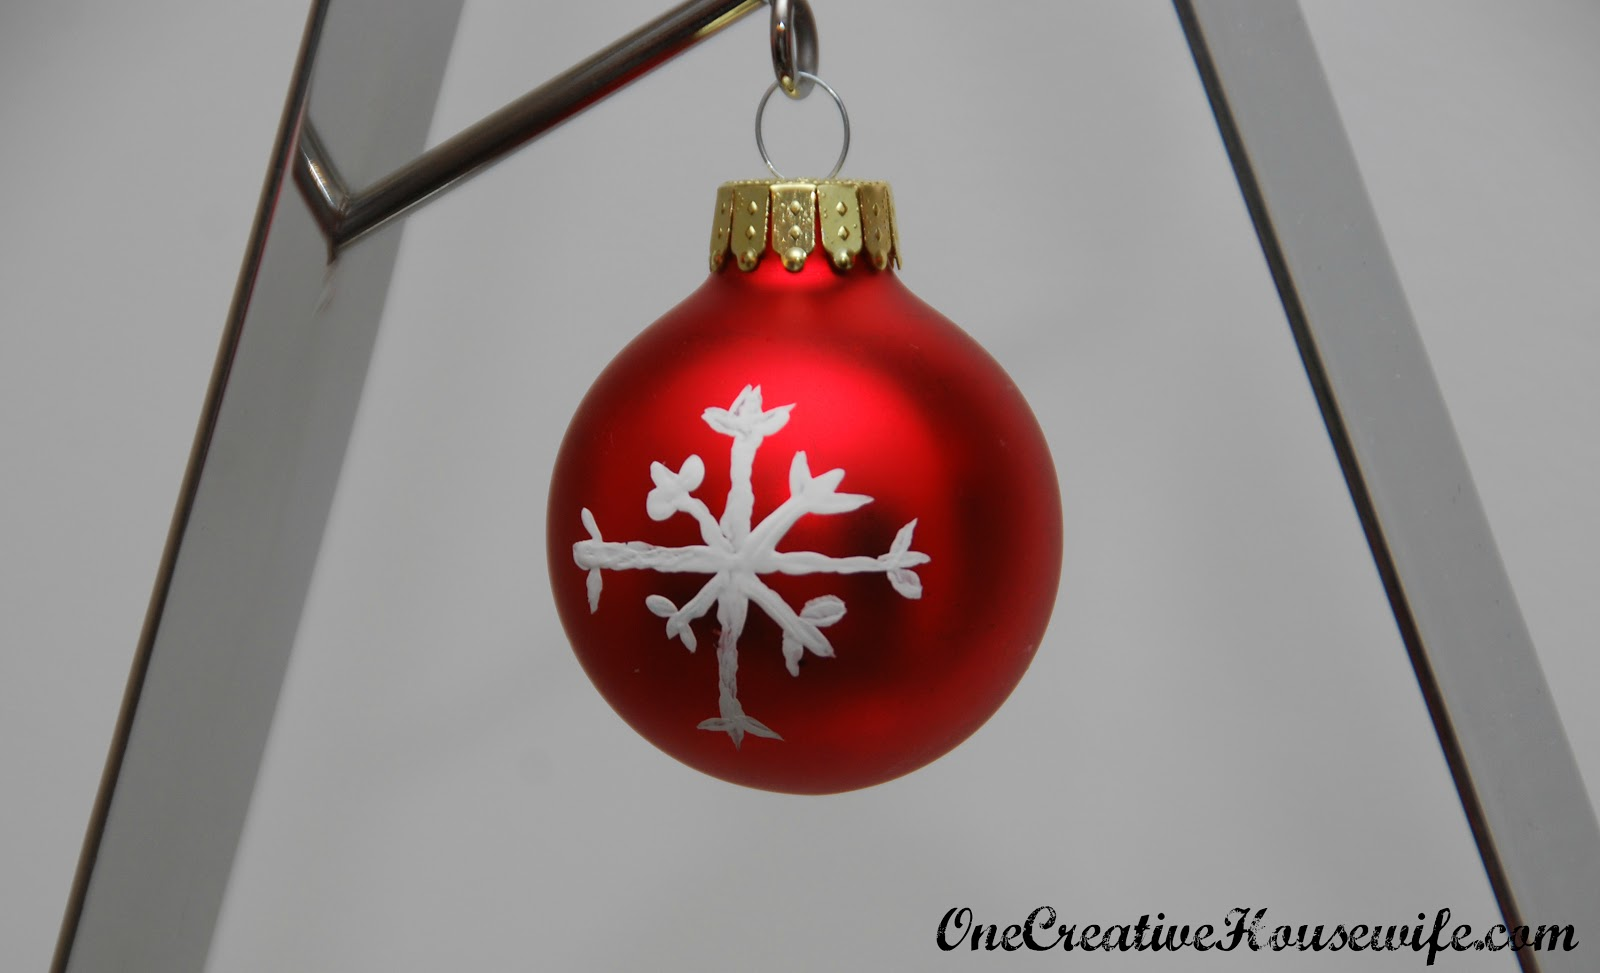 Glue for glass ornaments - Due To The Glass Paint S Long Drying Time I Recommend Painting The Acrylic Paints First Then The Glitter Glue Then The Glass Paint